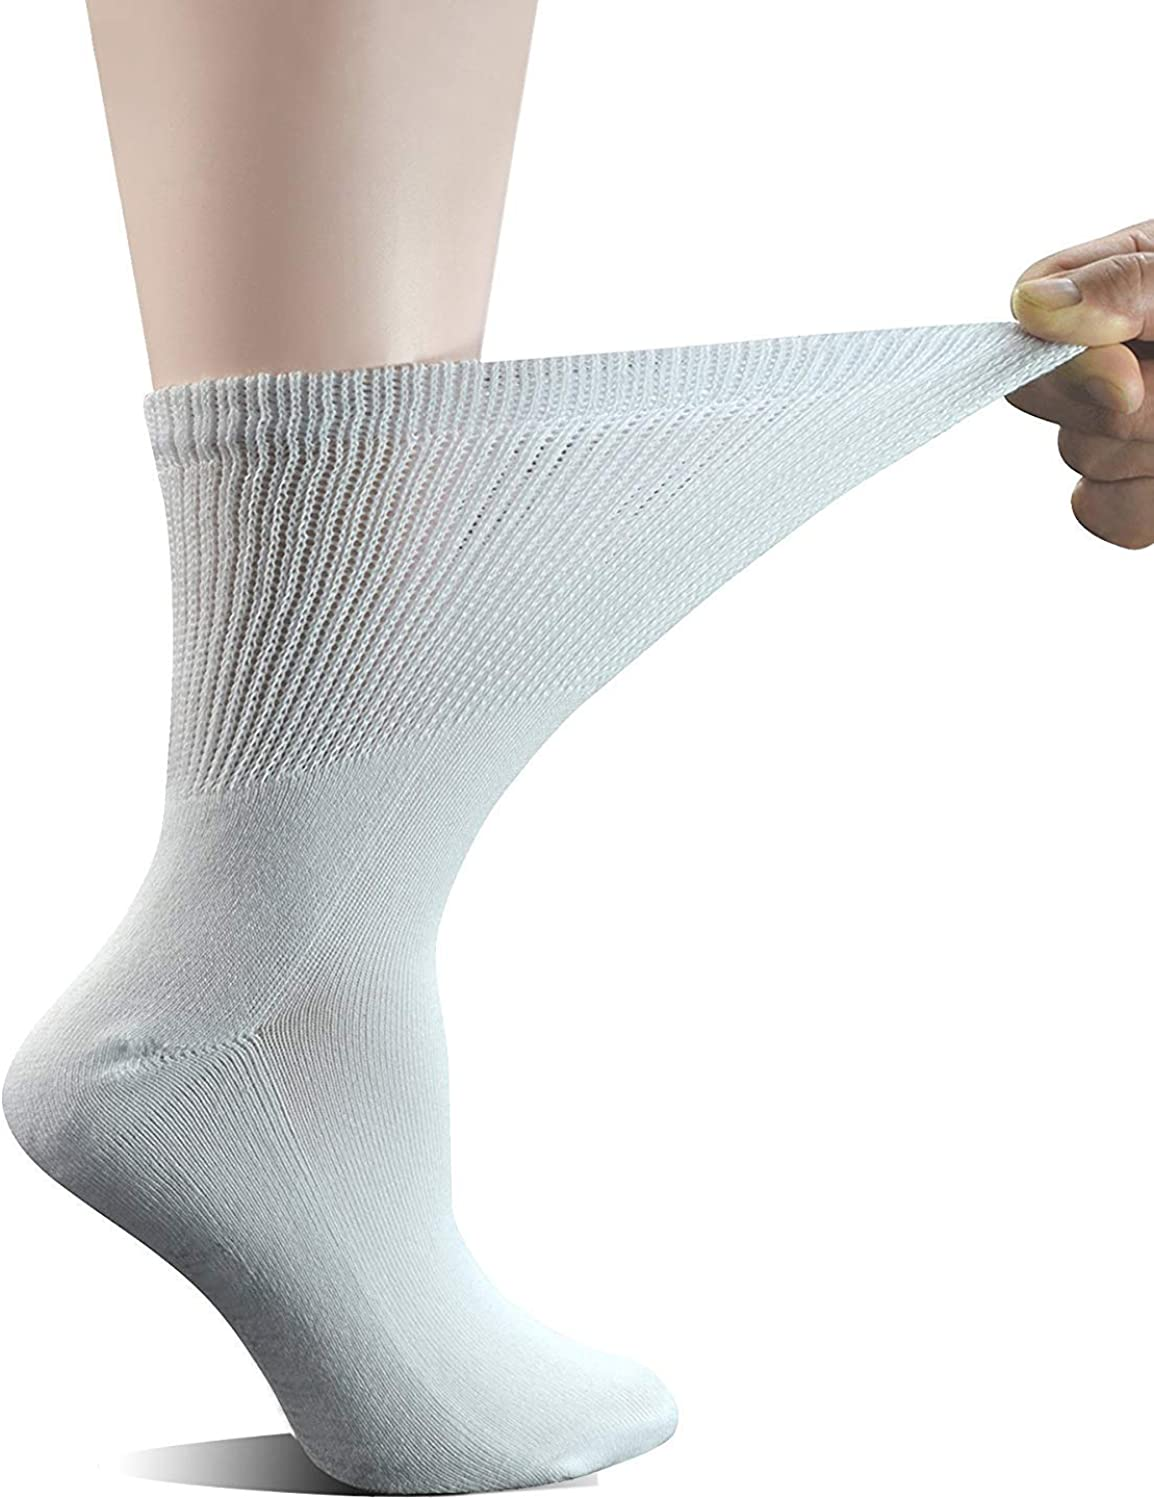 """Men/'s Diabetic Cotton /""""EXTRA WIDE/"""" Non-Elasticated Big-Foot Socks with Hand Link"""